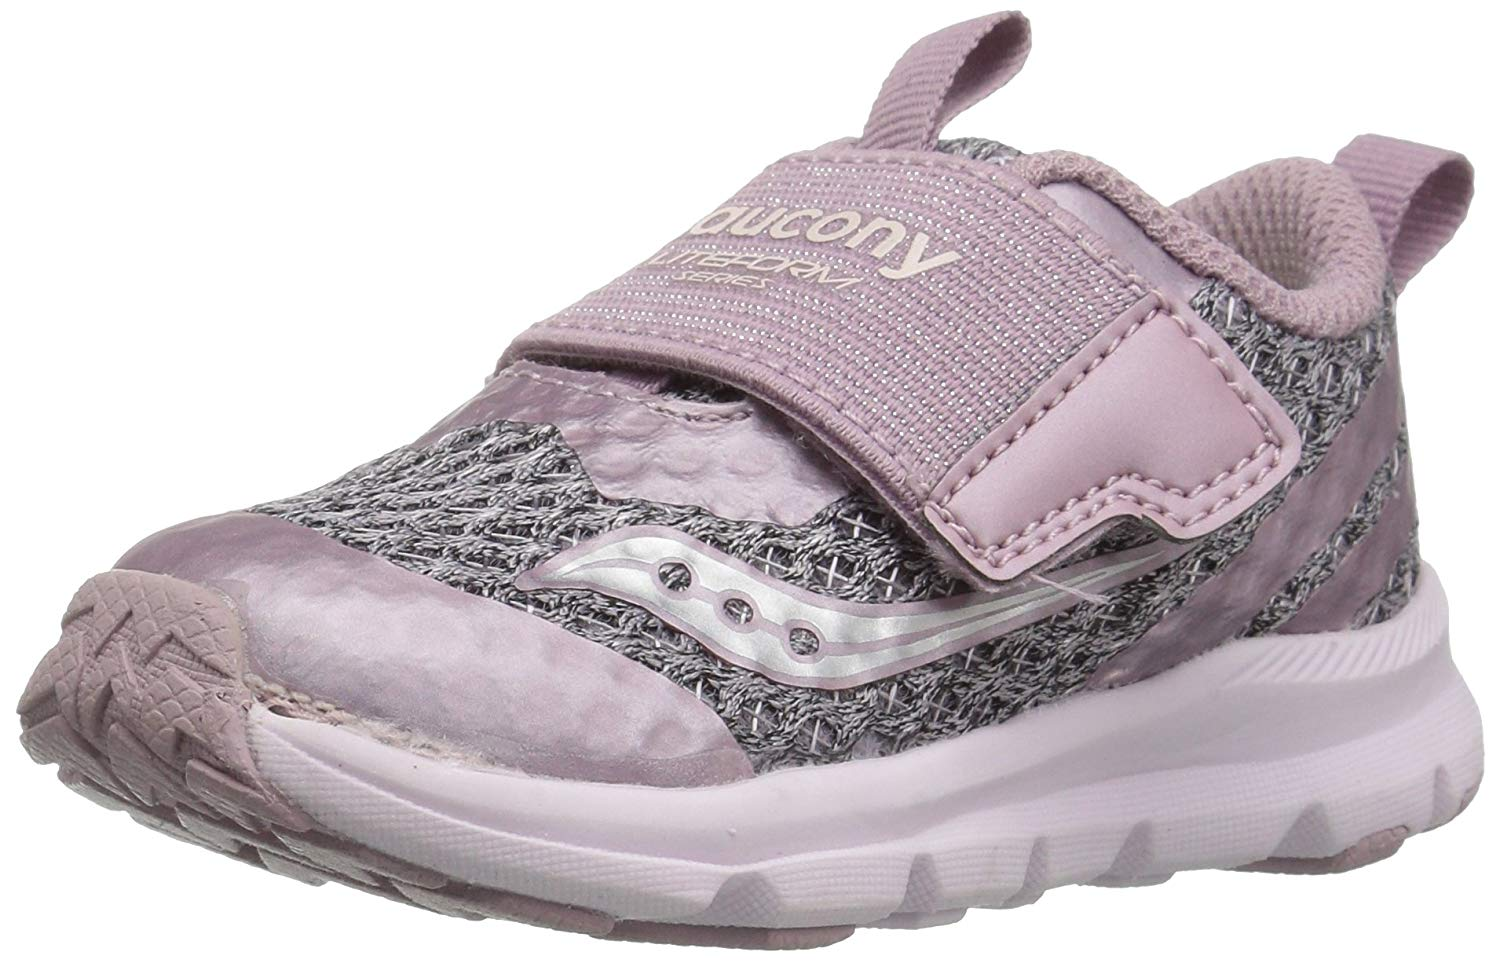 f3b08b44 Details about Saucony Girls Baby Liteform Sneaker